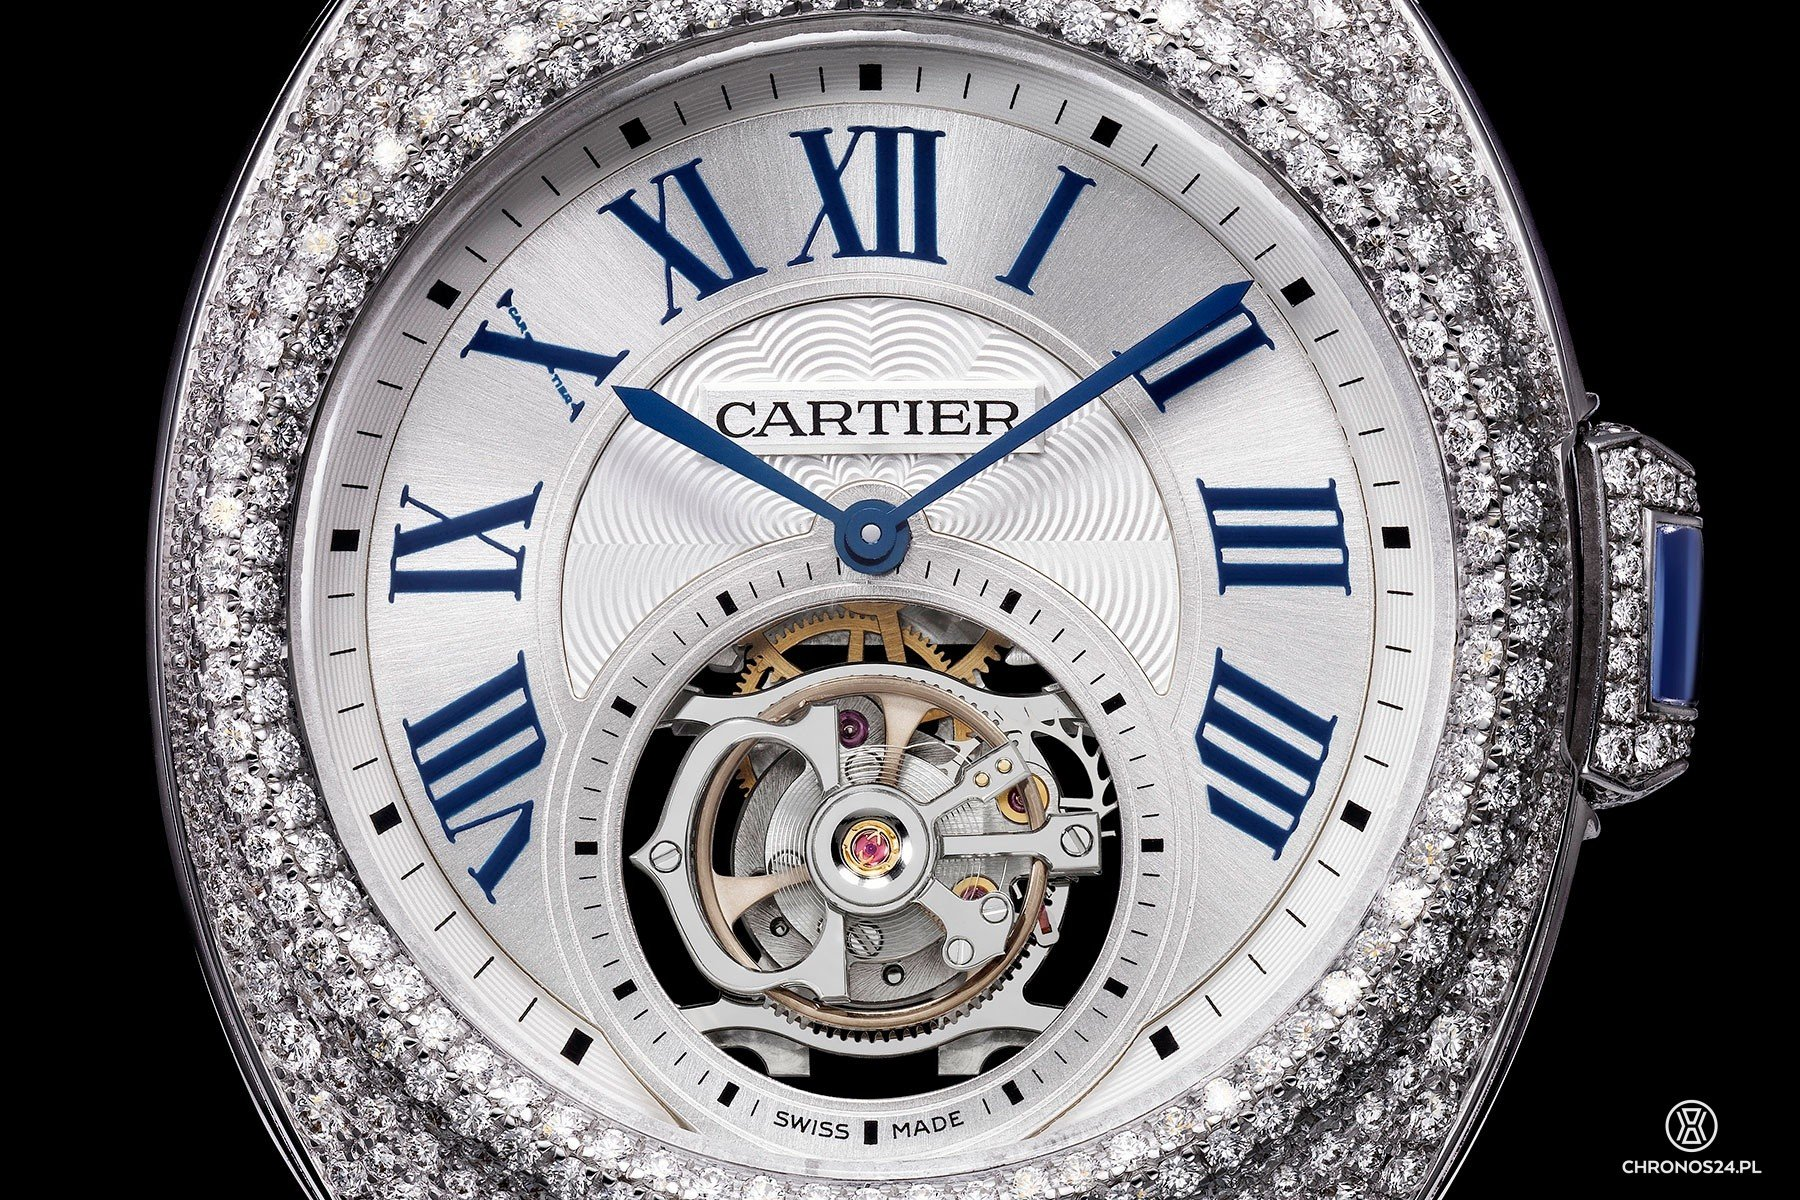 Cartier Clé de Cartier Flying Tourbillon